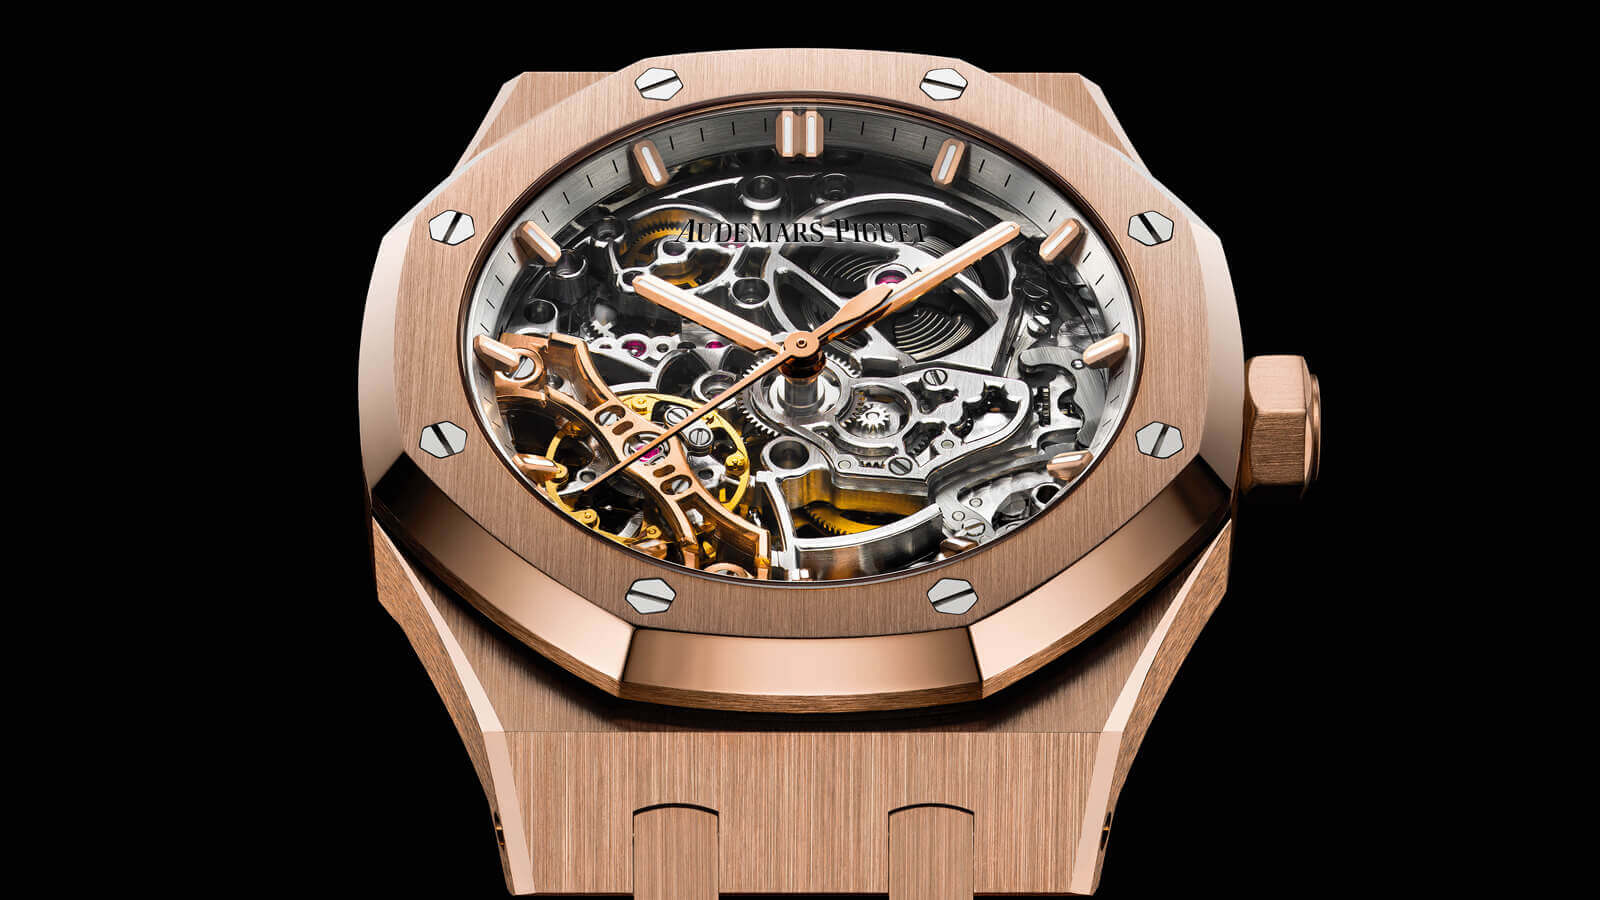 f90c7f684a Audemars Piguet Royal Oak Double Balance Wheel Openworked 37mm | REVIEW